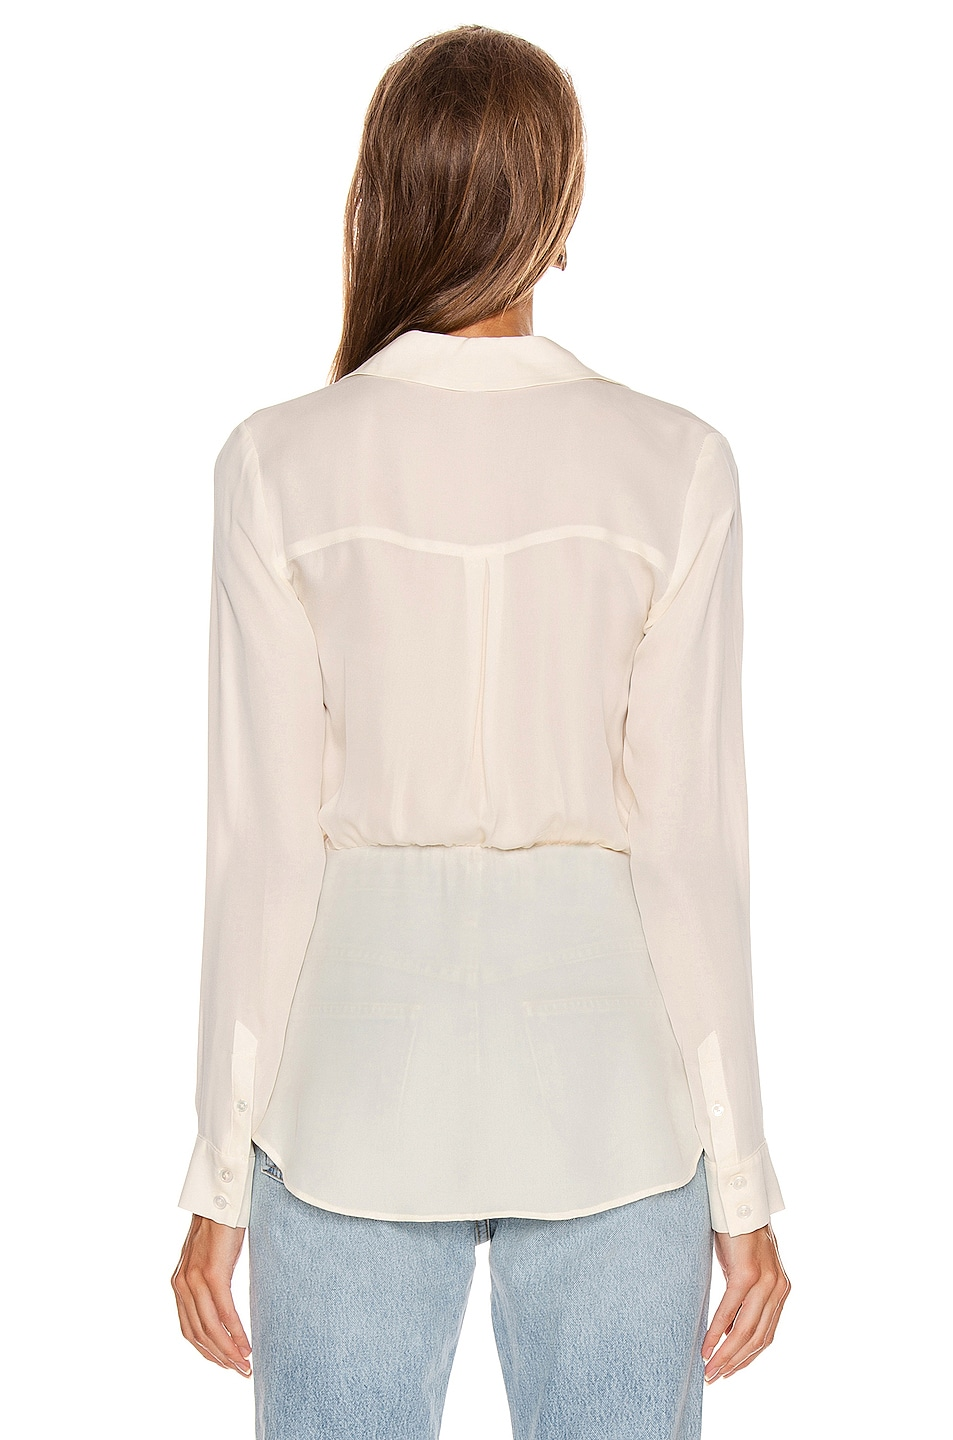 Image 4 of Veronica Beard Clyde Top in White